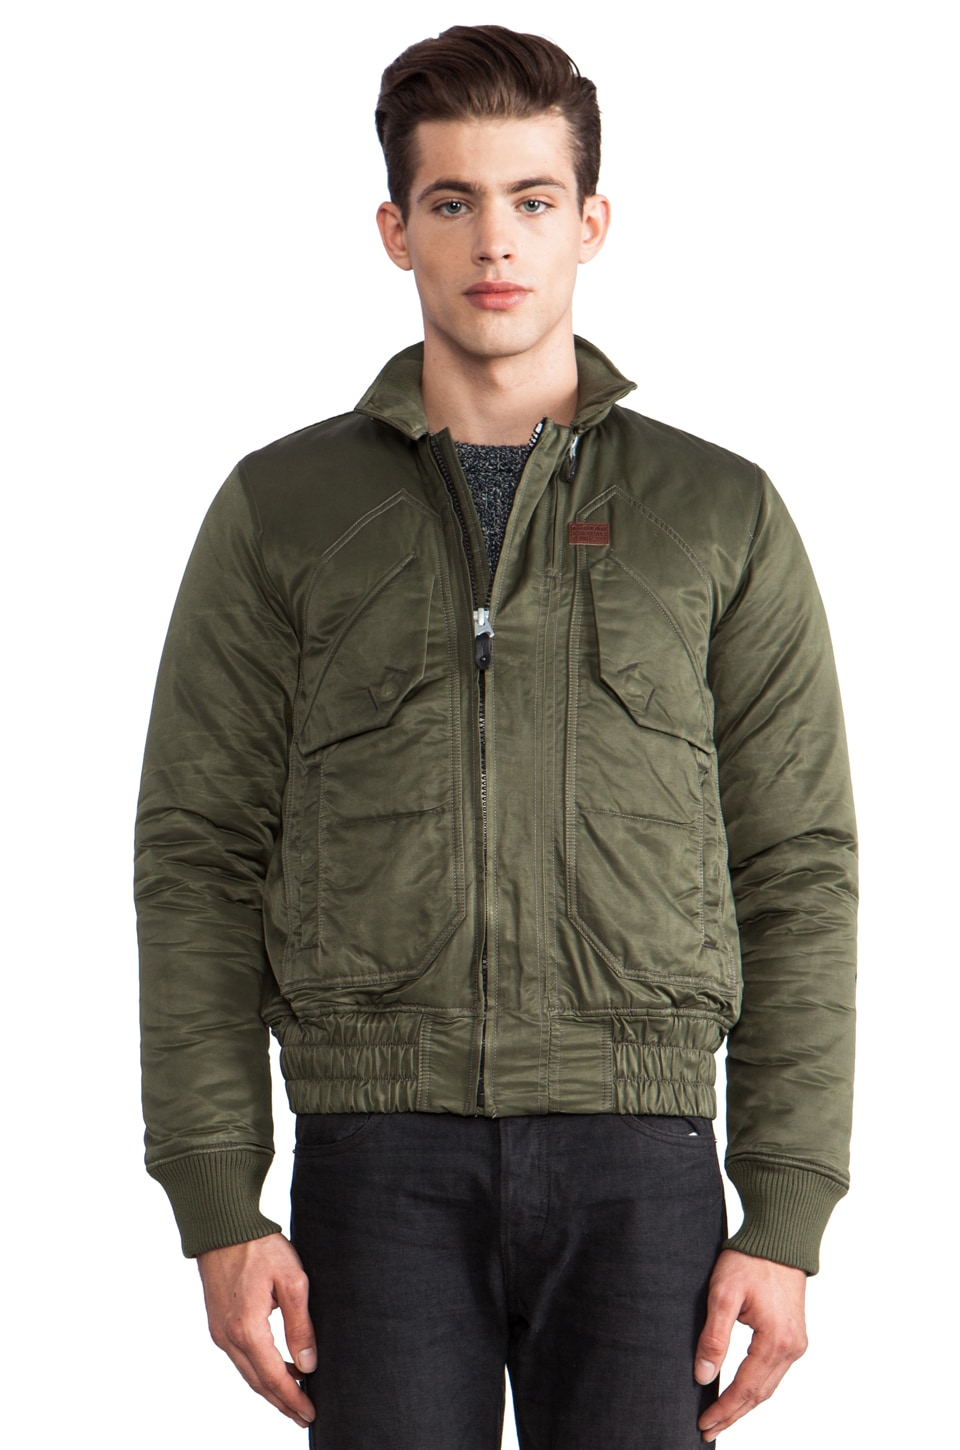 G-Star Atlas Marlow Bomber in Bright Rovic Green